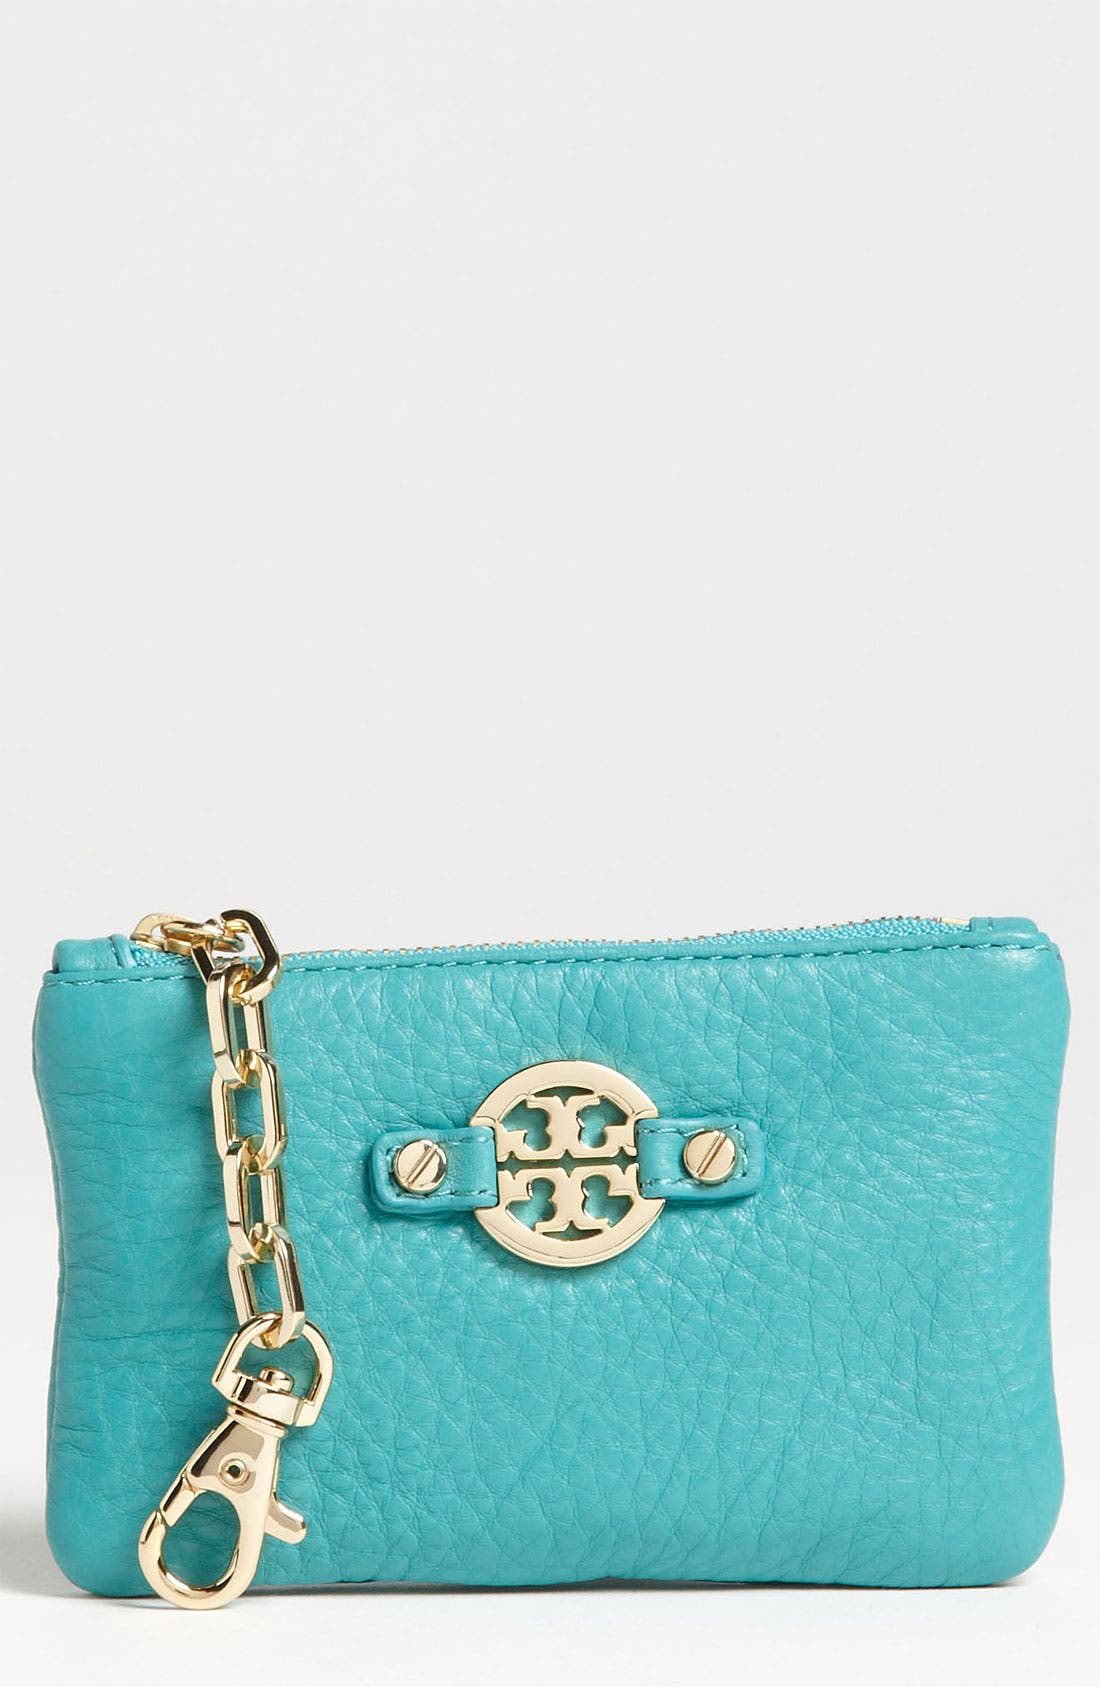 Alternate Image 1 Selected - Tory Burch 'Amanda' Coin Purse